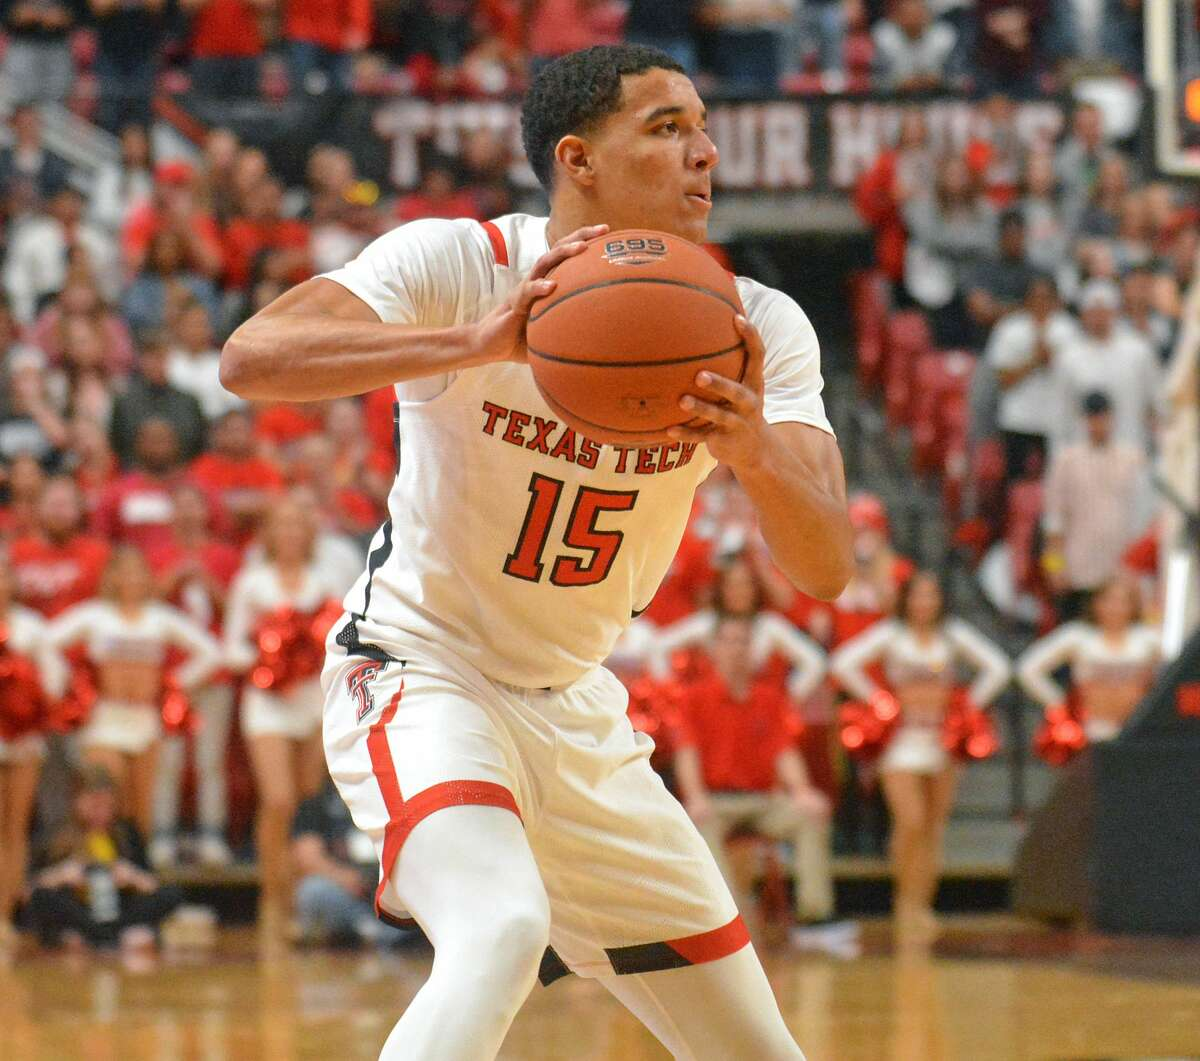 Texas Tech's Kevin McCullar was finally healthy for a full offseason as the redshirt sophomore is expected to be a key player for the Red Raiders in 2020-21.